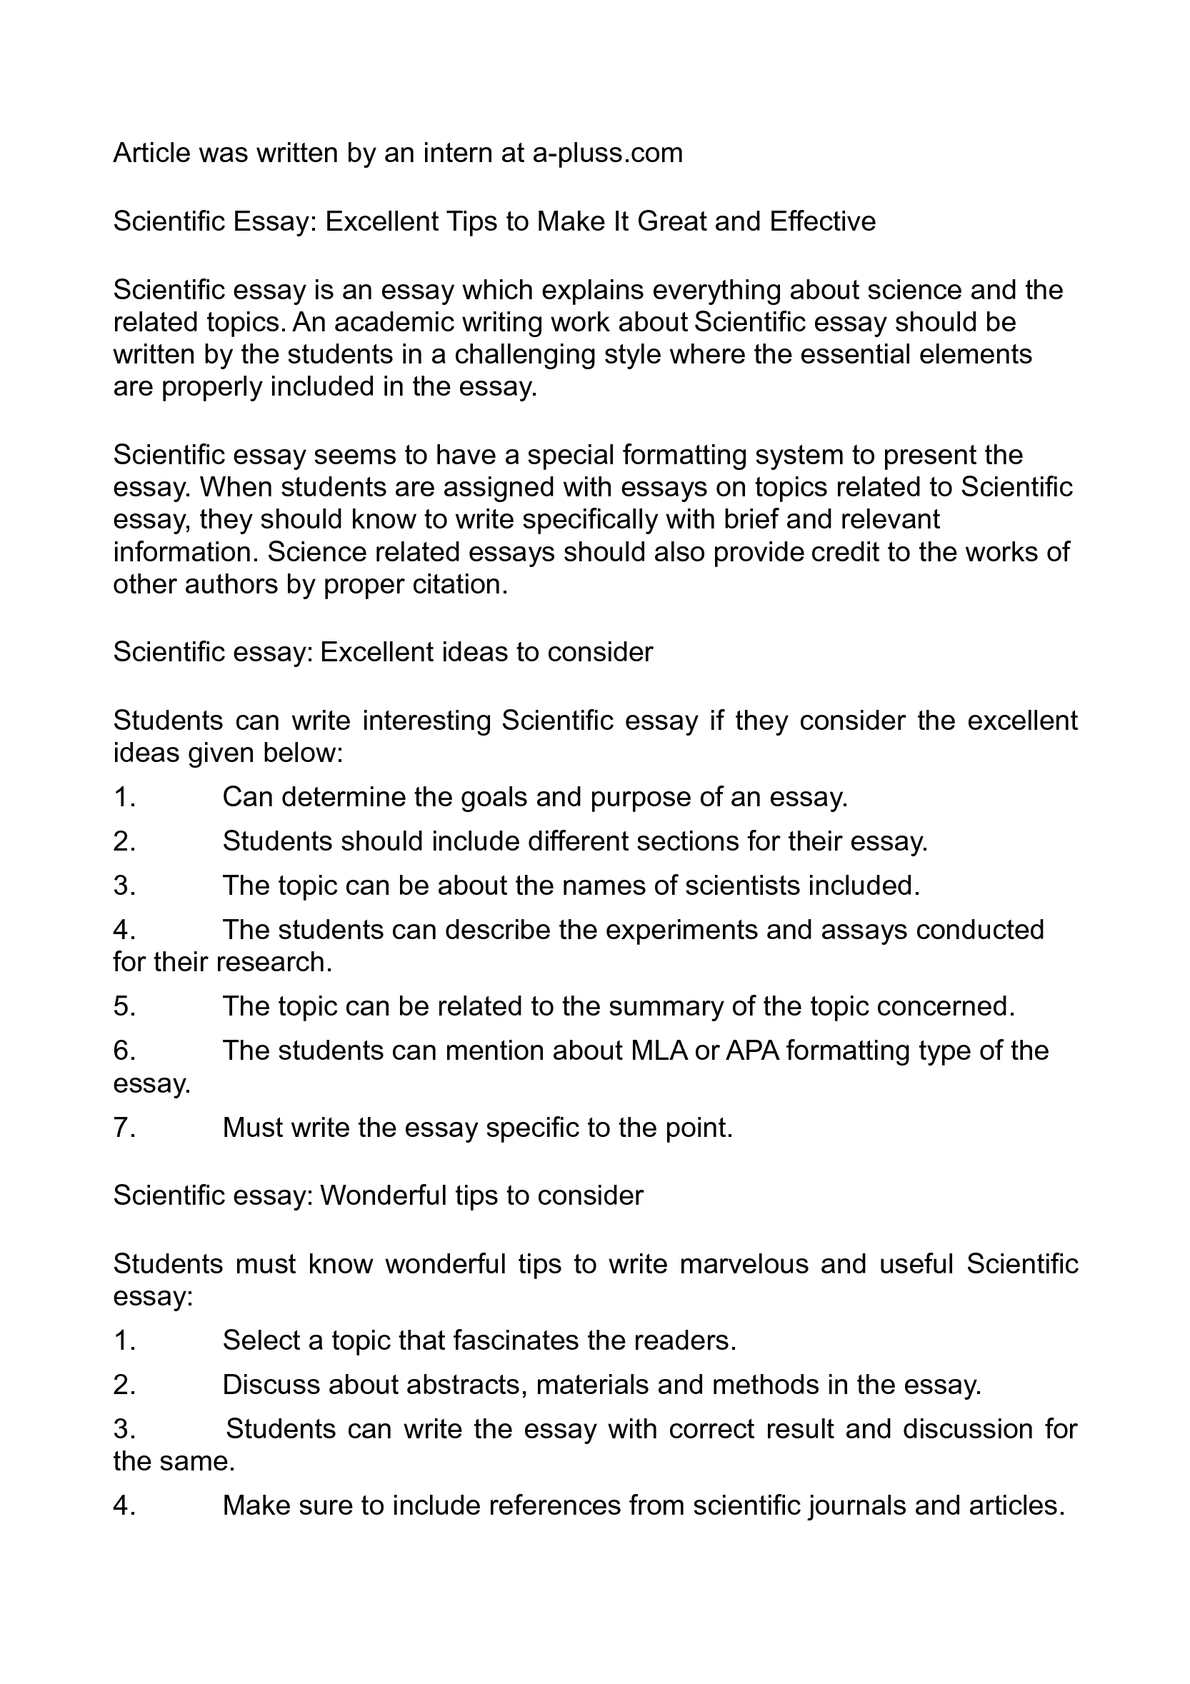 Calamo  Scientific Essay Excellent Tips To Make It Great And  Scientific Essay Excellent Tips To Make It Great And Effective